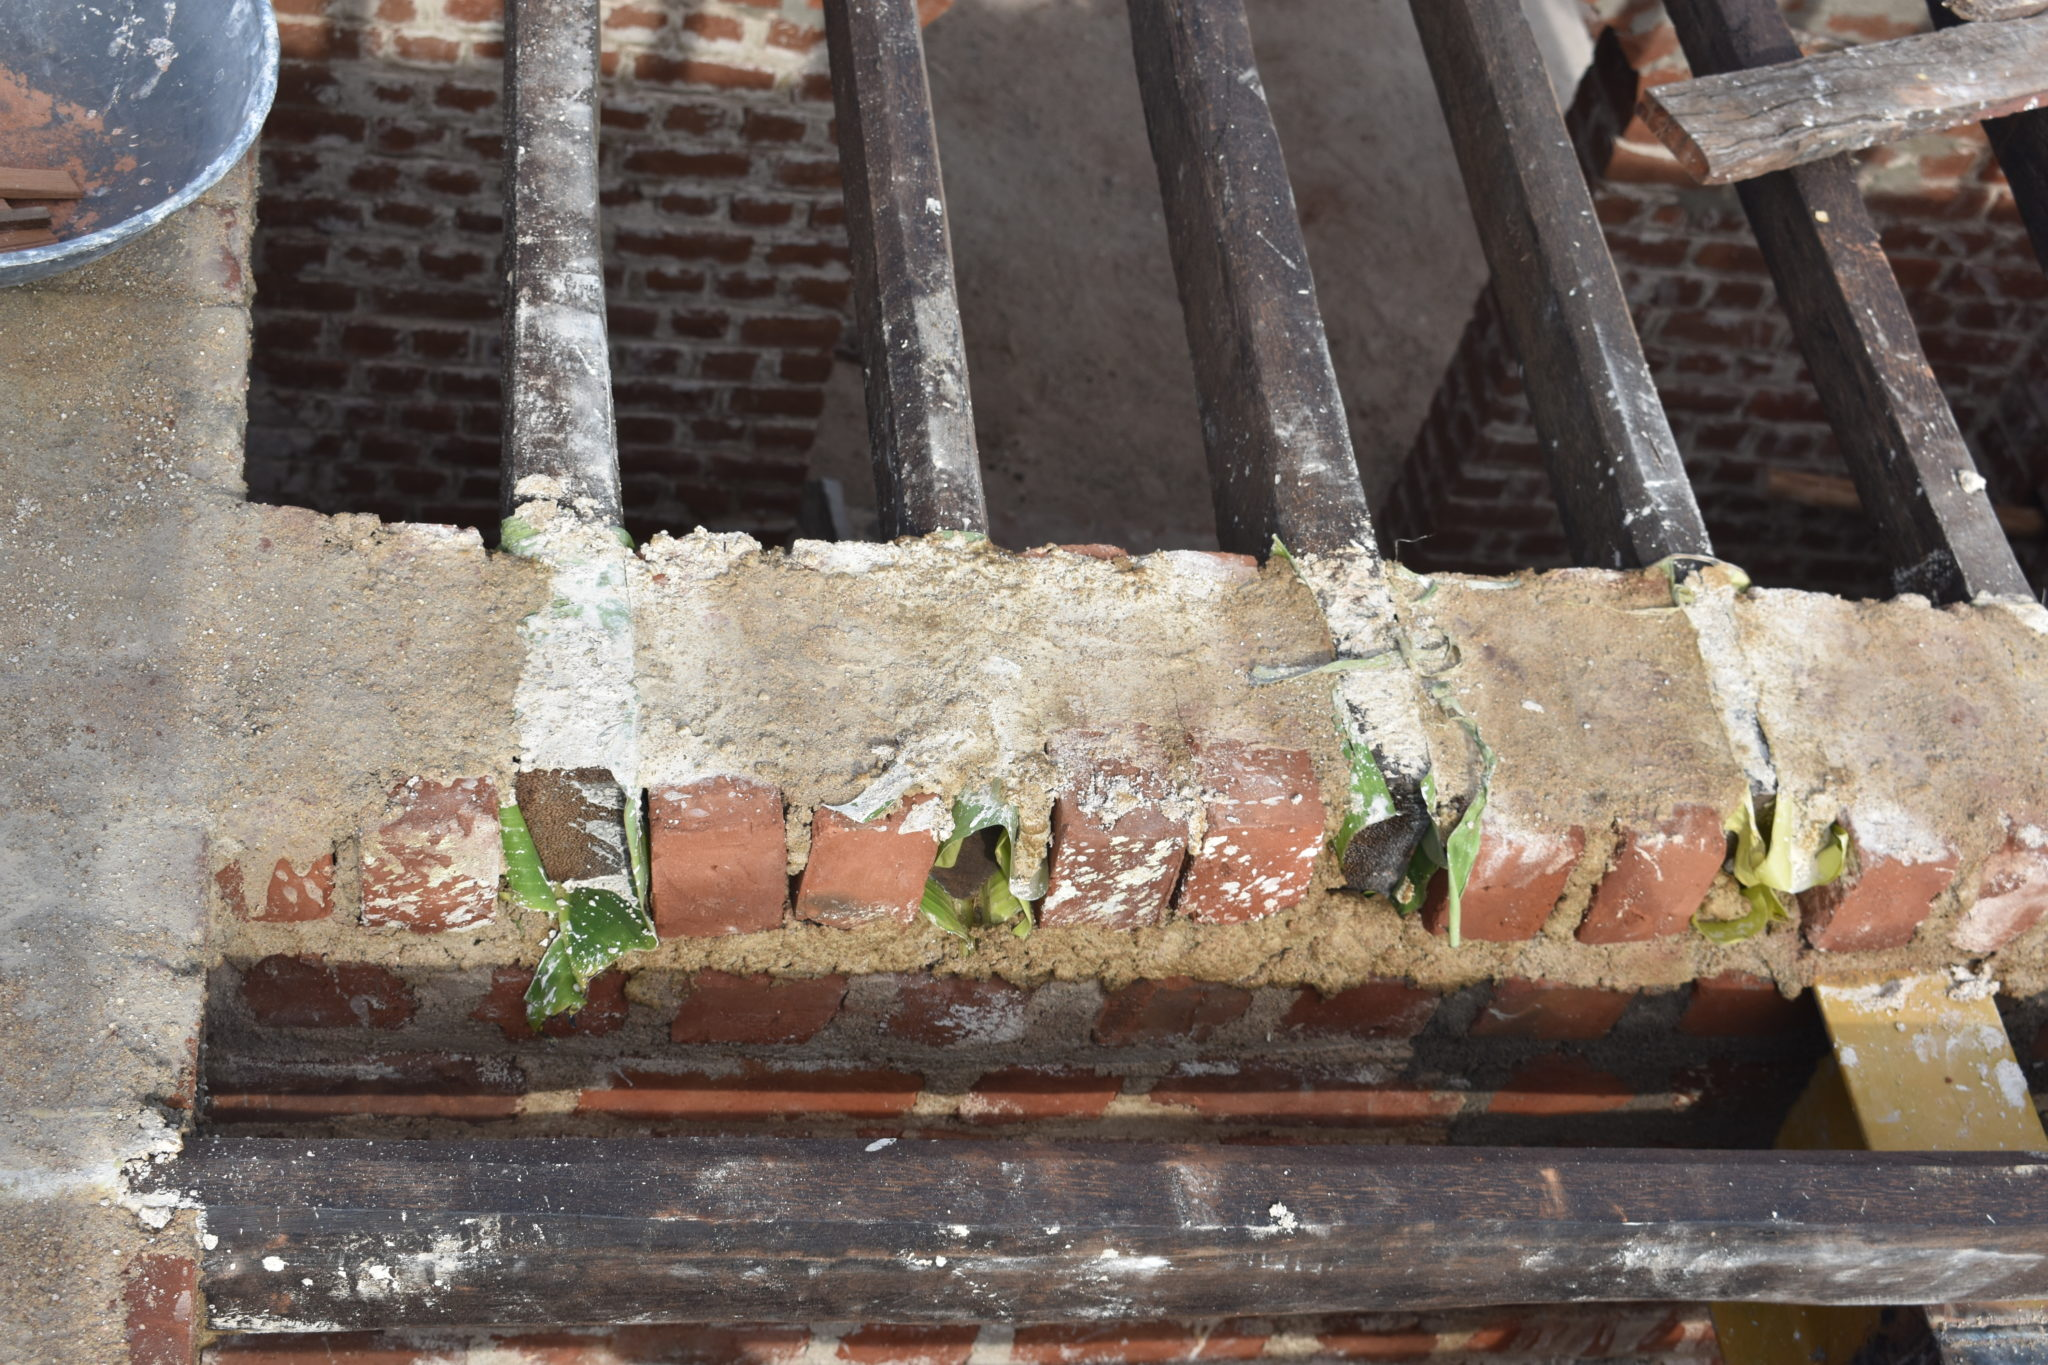 Plantain leaves being used between wood and the bricks to prevent termite attack.